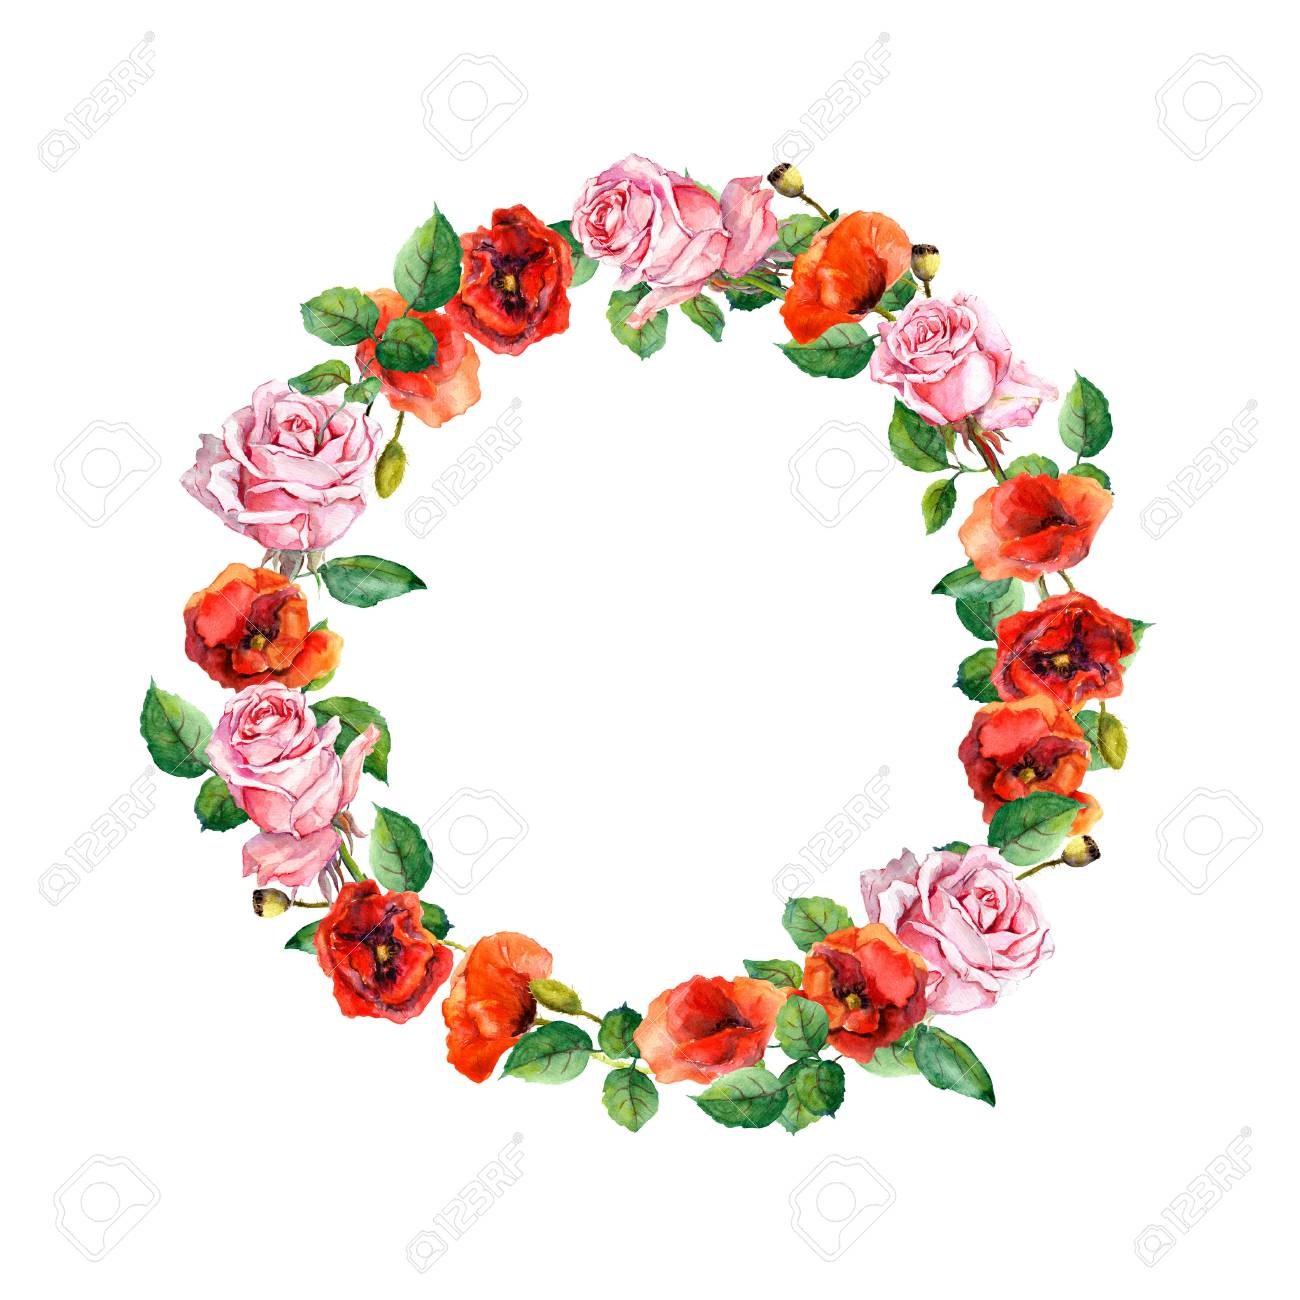 Rose And Poppy Flowers Floral Wreath For Wedding Card Or Valentine Day Watercolor Circle